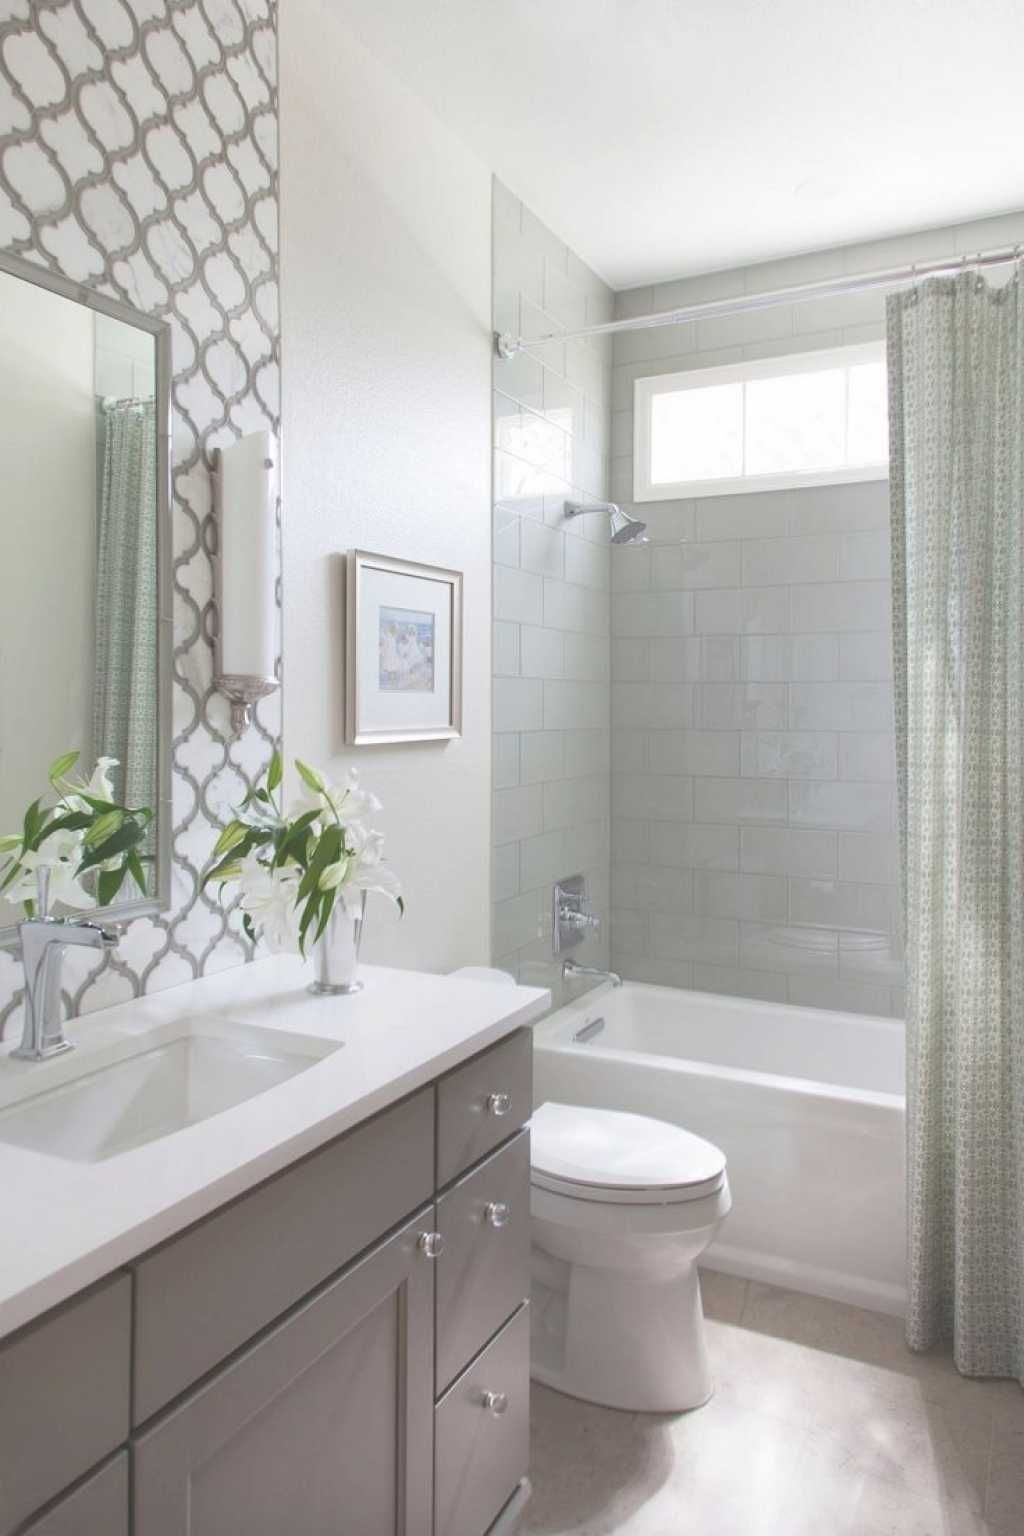 Genial Small Bathroom Tub Shower Combo Remodeling Ideas Http://zoladecor.com/small  Bathroom Tub Shower Combo Remodeling Ideas